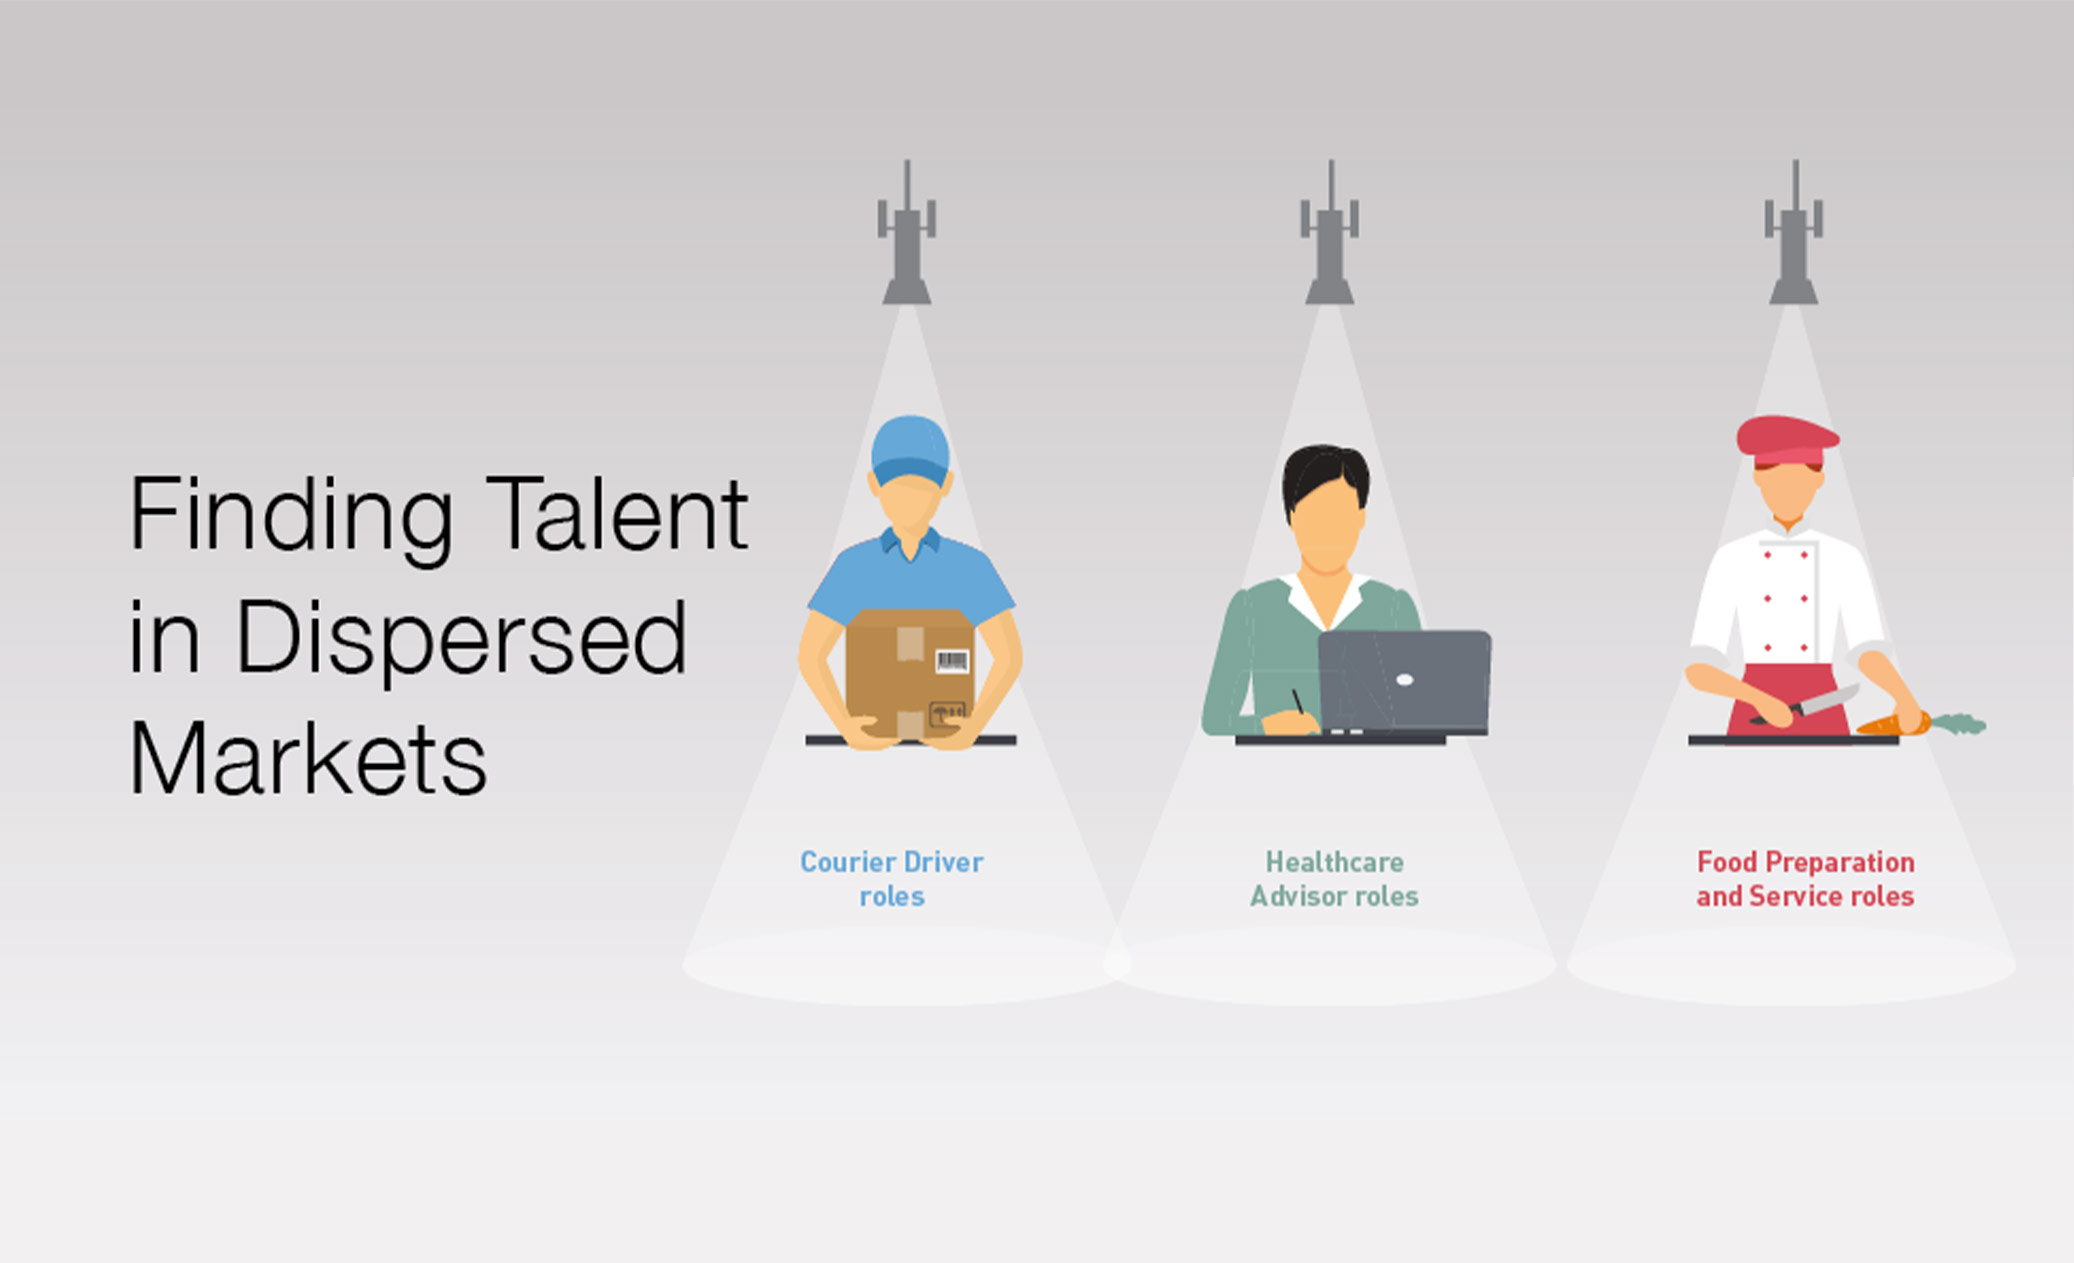 Finding Talent in Dispersed Markets